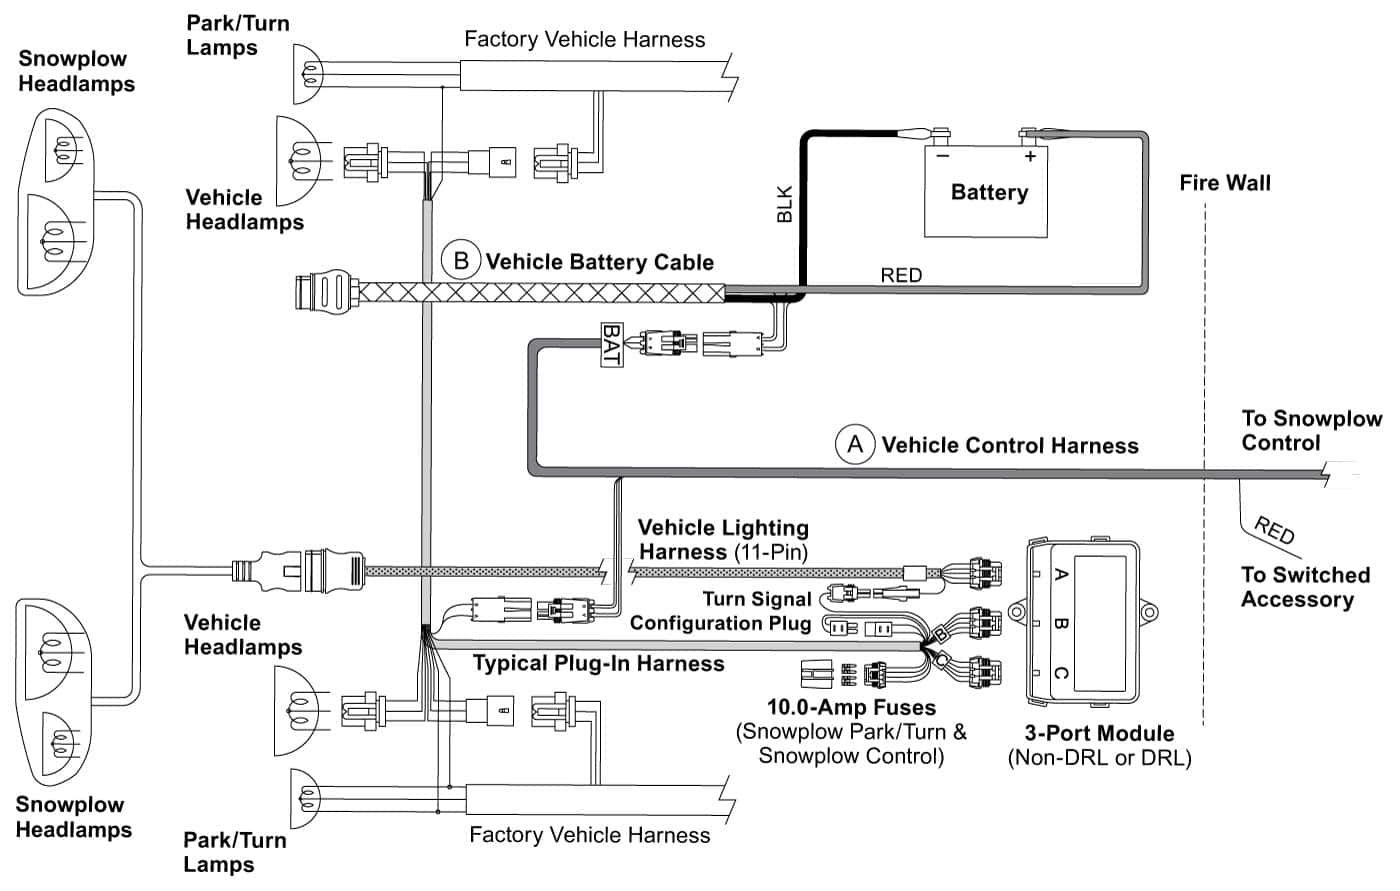 HD2 Vehicle-Side Harness (3-Port, 2-Plug) Diagram